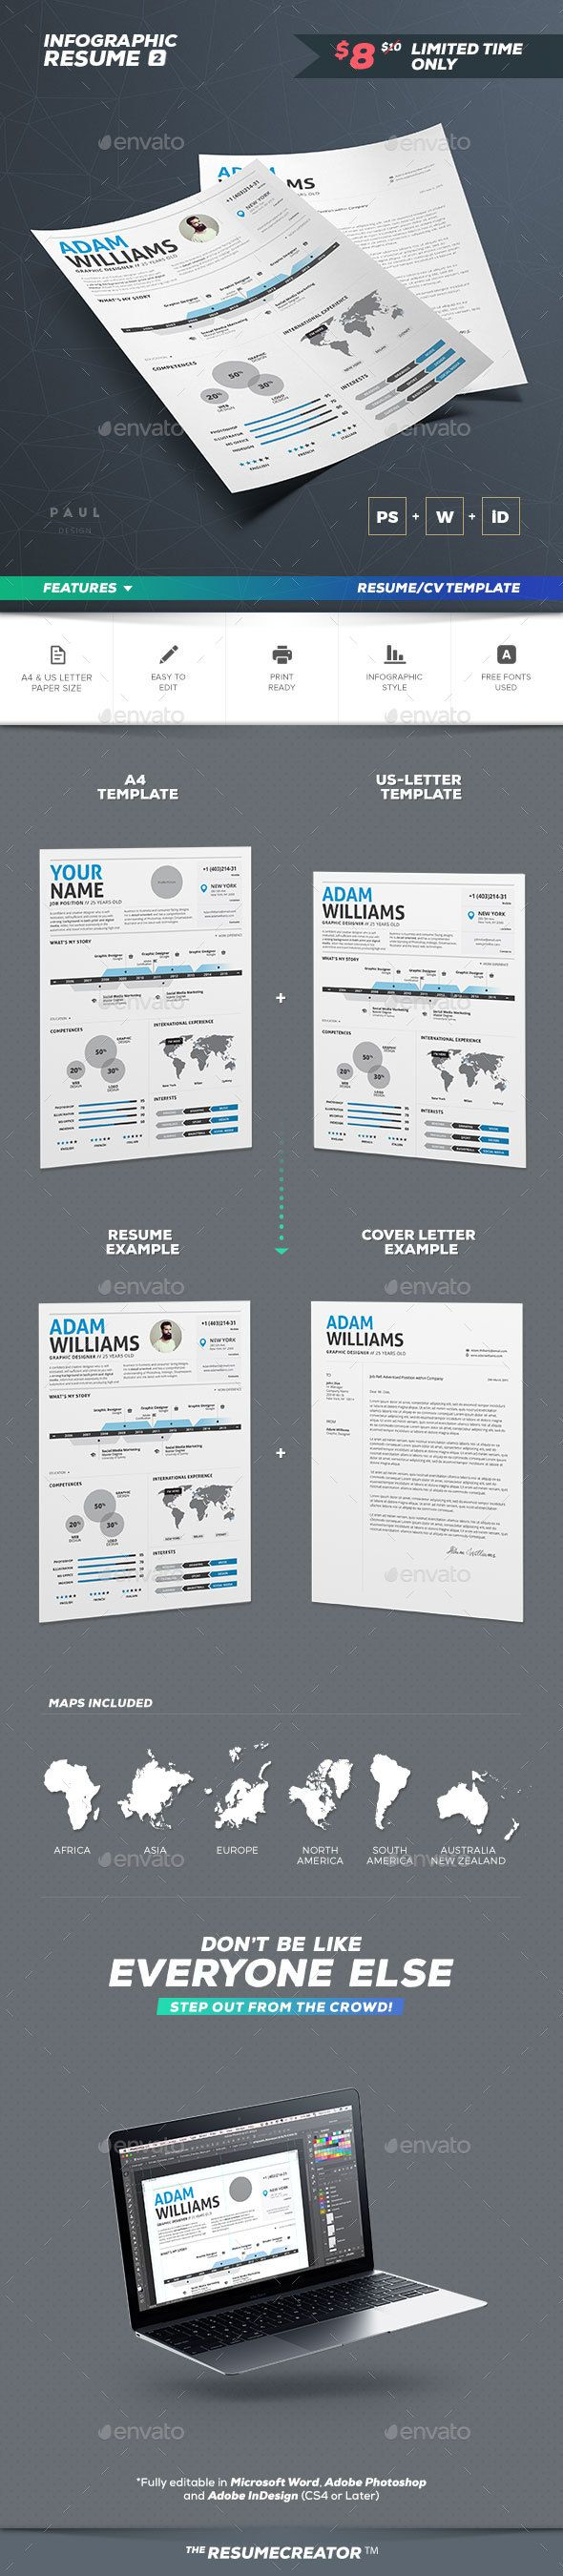 Infographic Resume Vol. 2 by paolo6180 Professionally designed, easy-to-edit template package for the job seeker who wants to leave an unforgettable impression. Fast tr